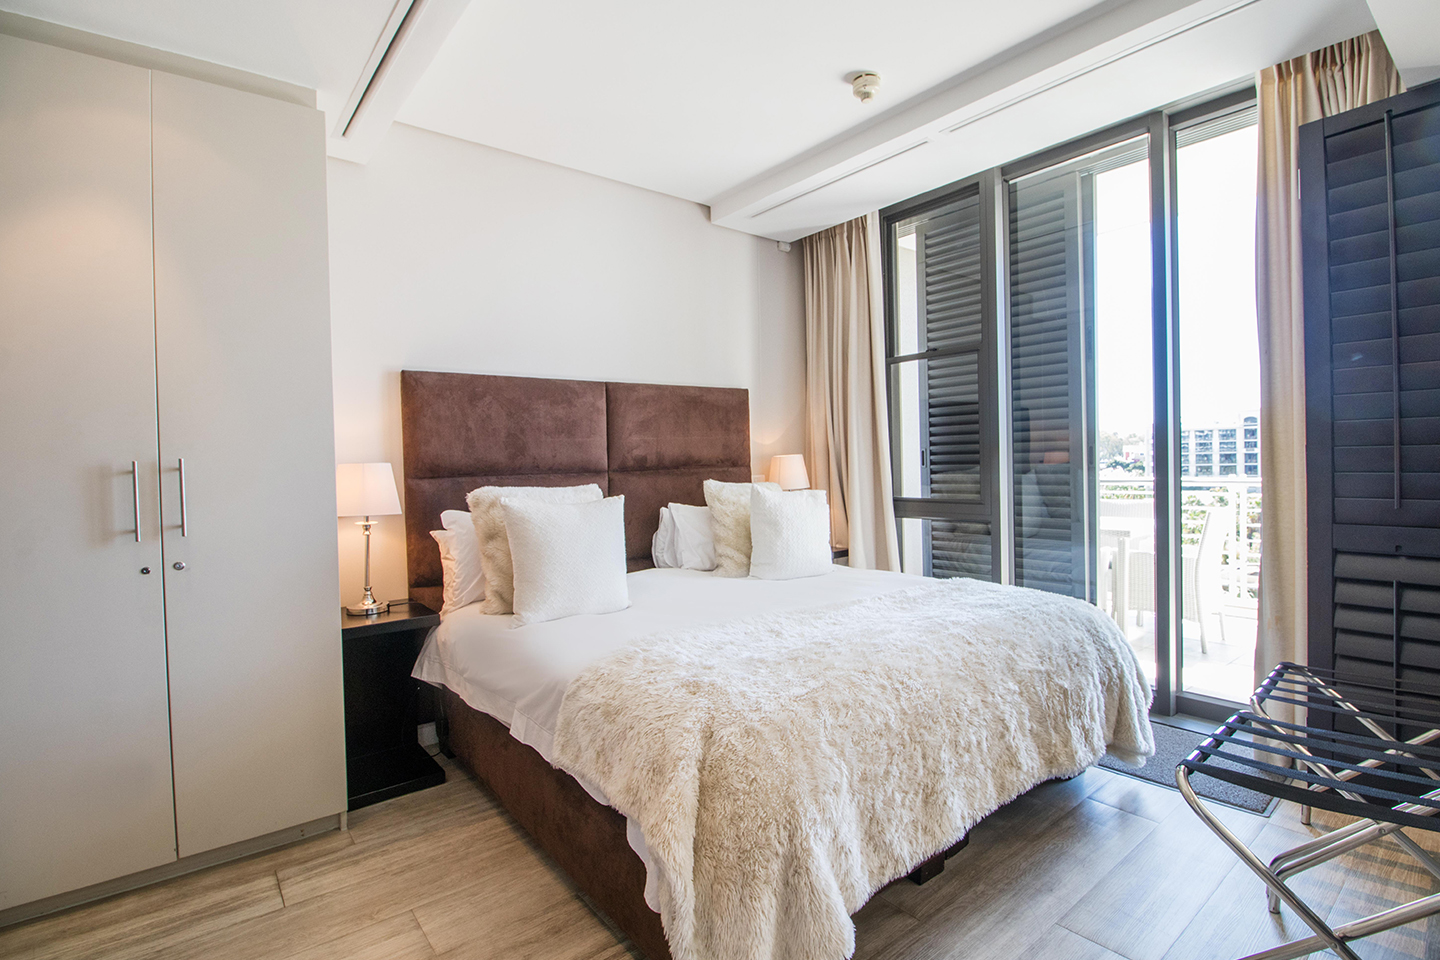 Bedroom at Waterfront Village - Citybase Apartments